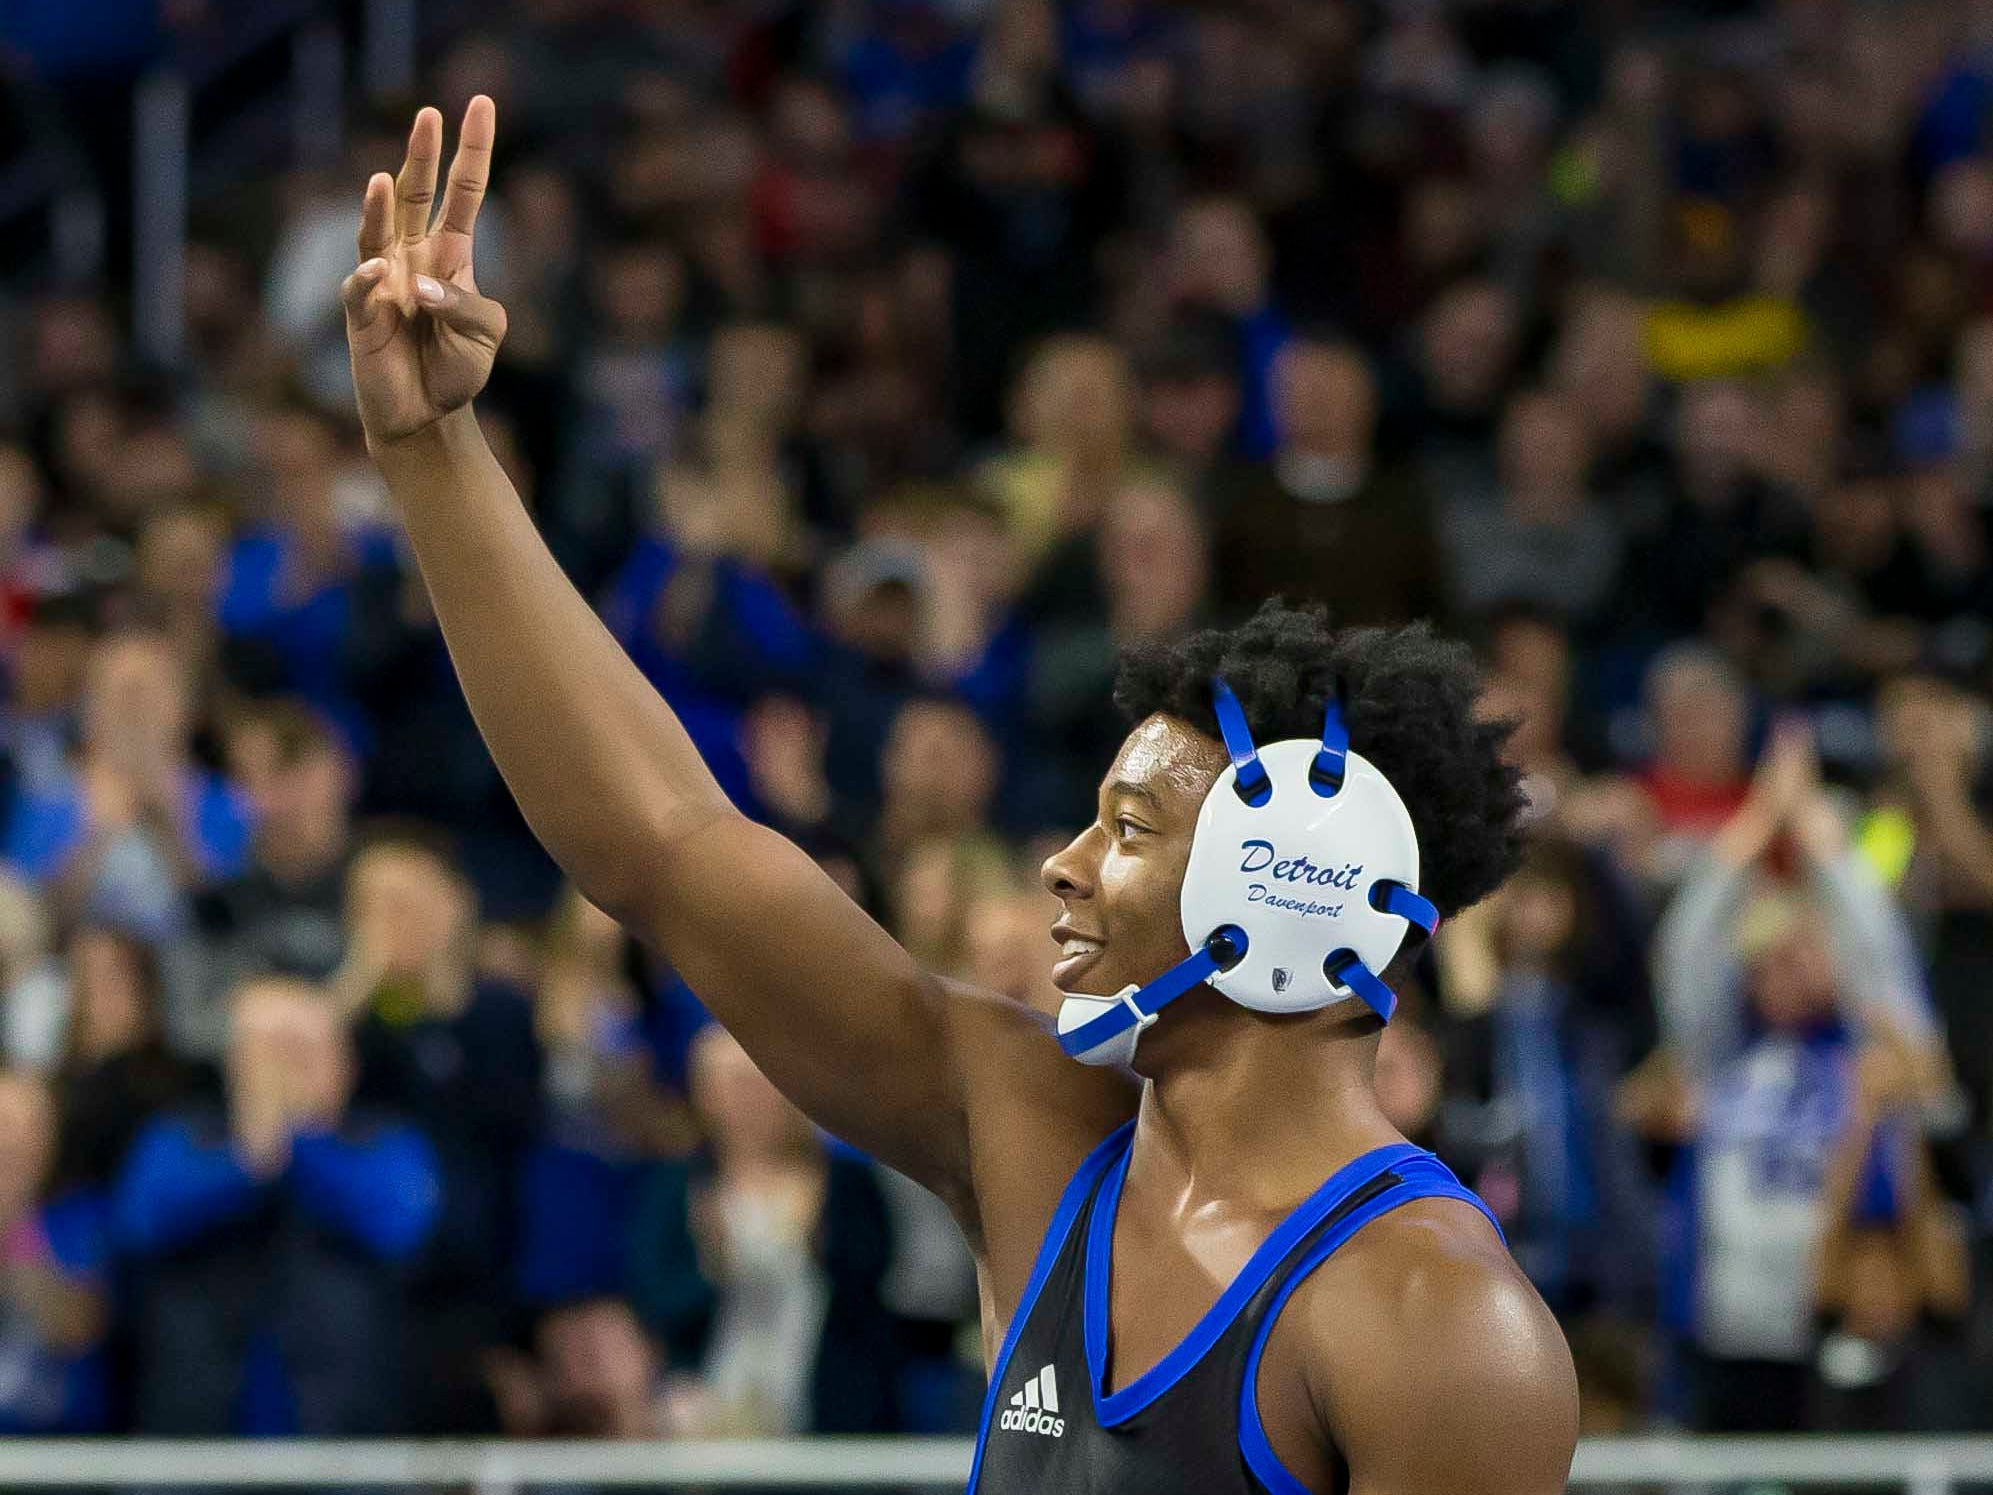 Kevon Davenport of Detroit Catholic Central flashes four fingers to the crowd after defeating Vic Schoenherr of Bay City Western in their 145-pound Division 1 championship match during the MHSAA Individual Wrestling Finals-Day 2 at Ford Field on March 2, 2019 in Detroit, Michigan. This was Davenports 4th straight state championship.